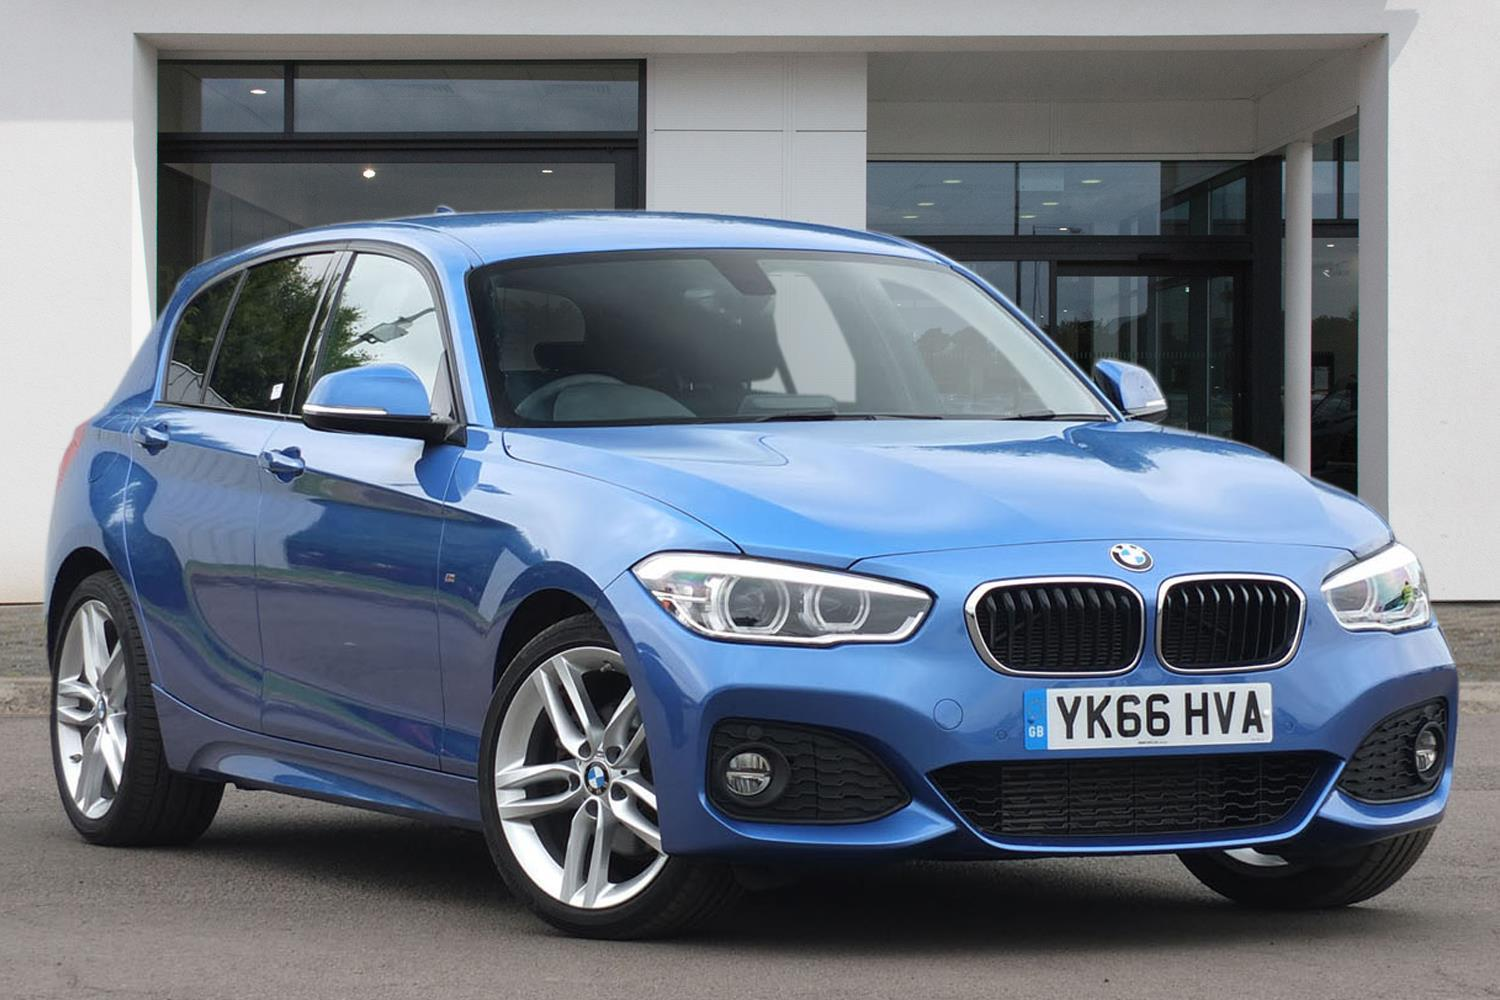 BMW 1 Series 5-door Sports Hatch YK66HVA - Image 8